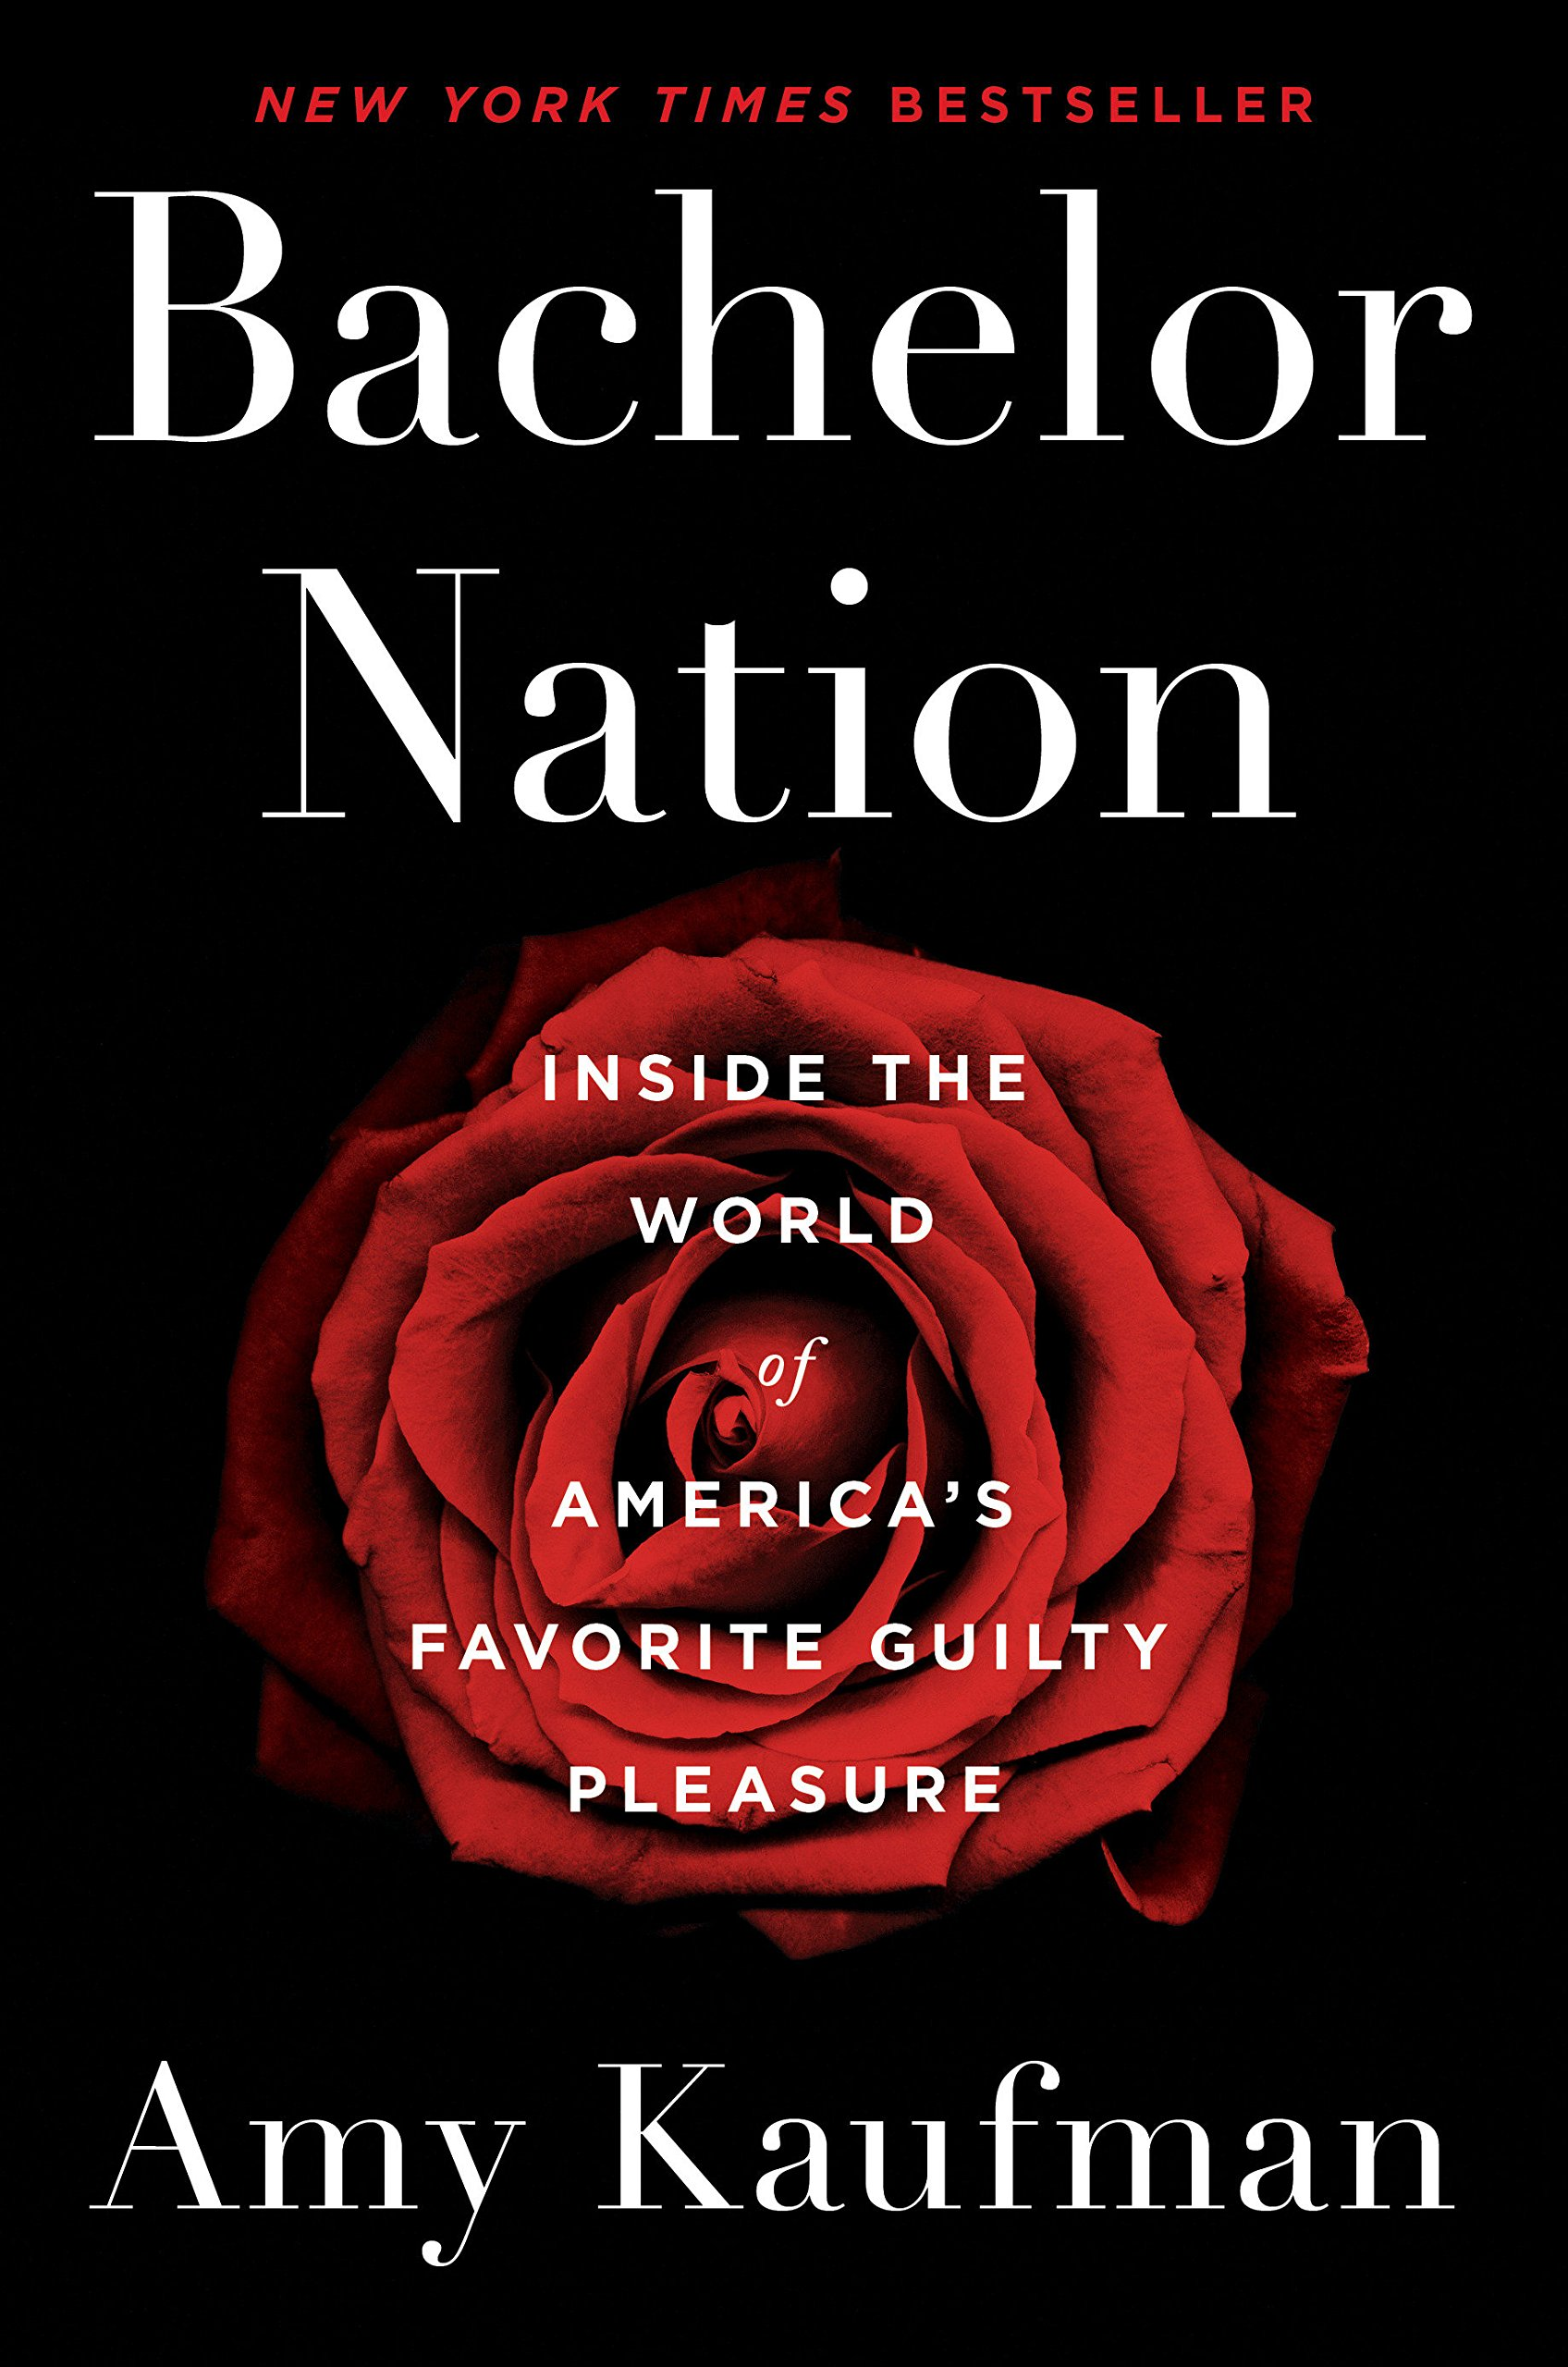 bachelor nation by amy kaufman book cover